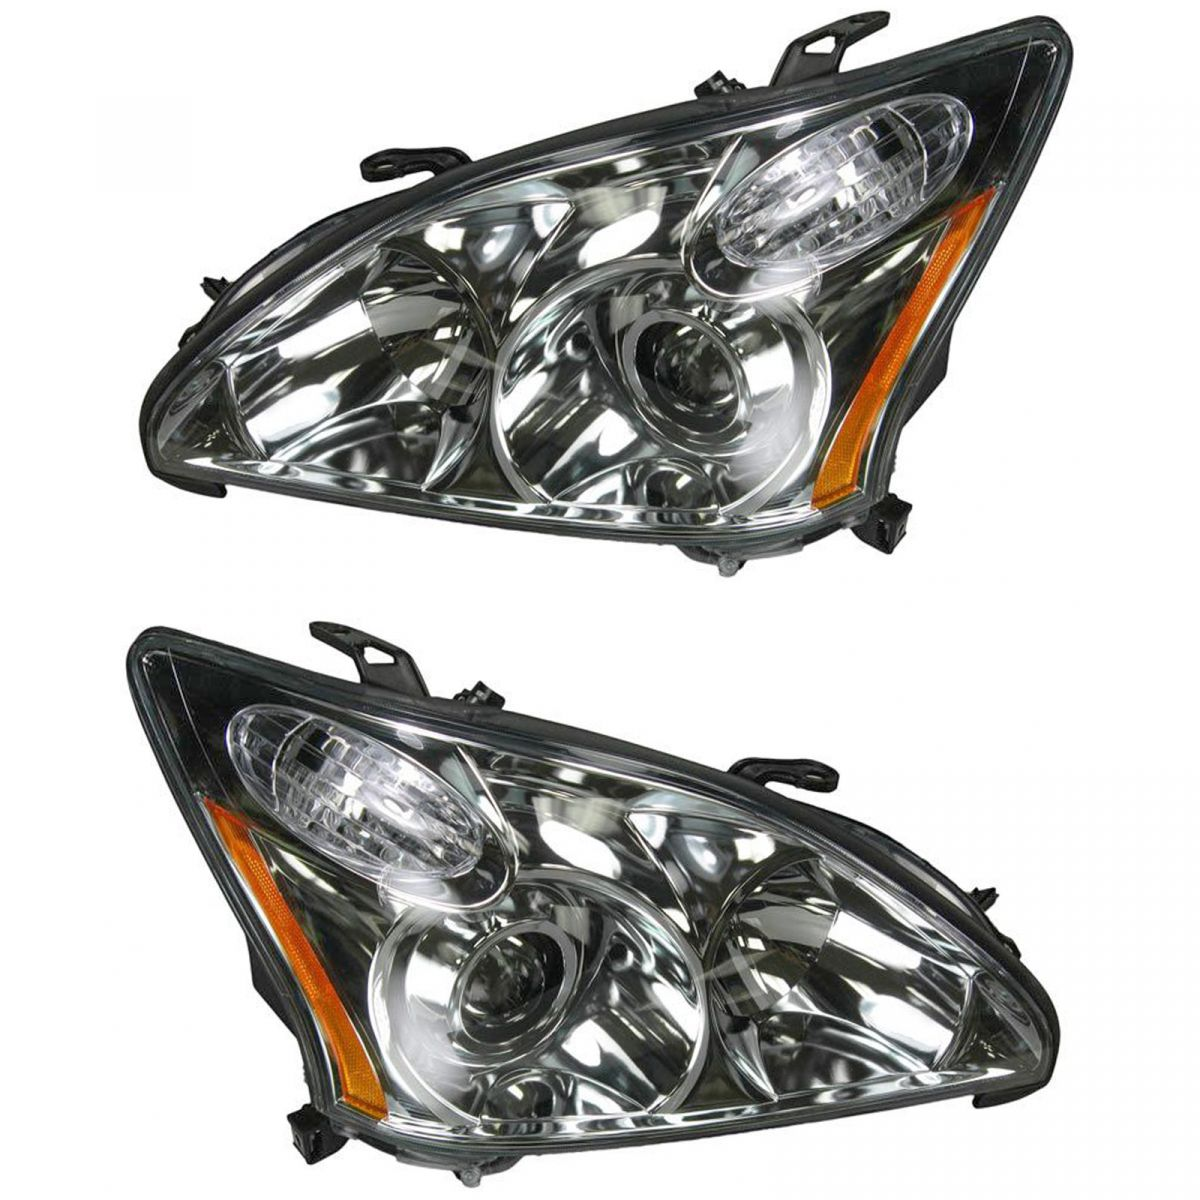 HID Xenon Headlights Headlamps Left & Right Pair Set for 04-06 Lexus RX330